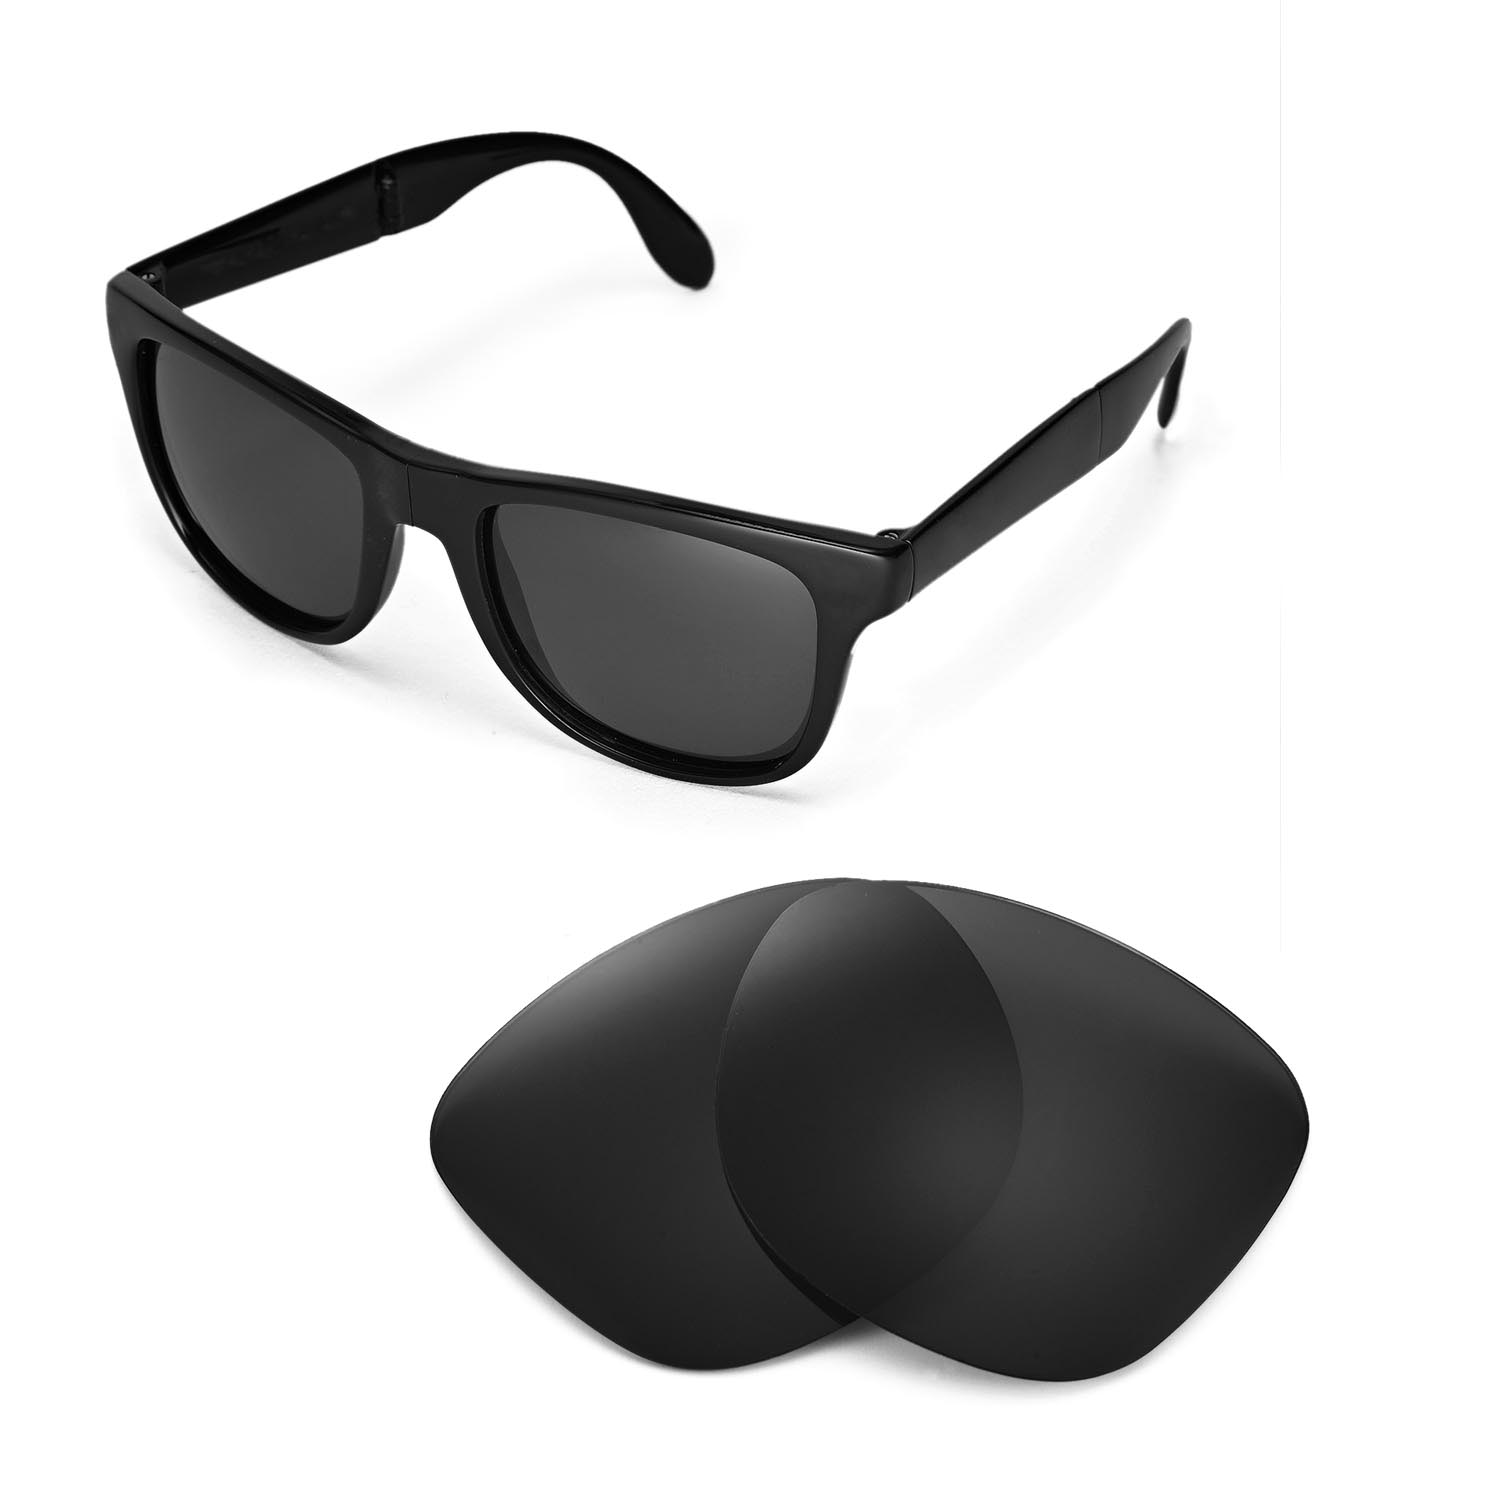 8b330e1f8db5b Details about New Walleva Polarized Black Lenses For Ray-Ban Wayfarer  RB4105 54mm Sunglasses